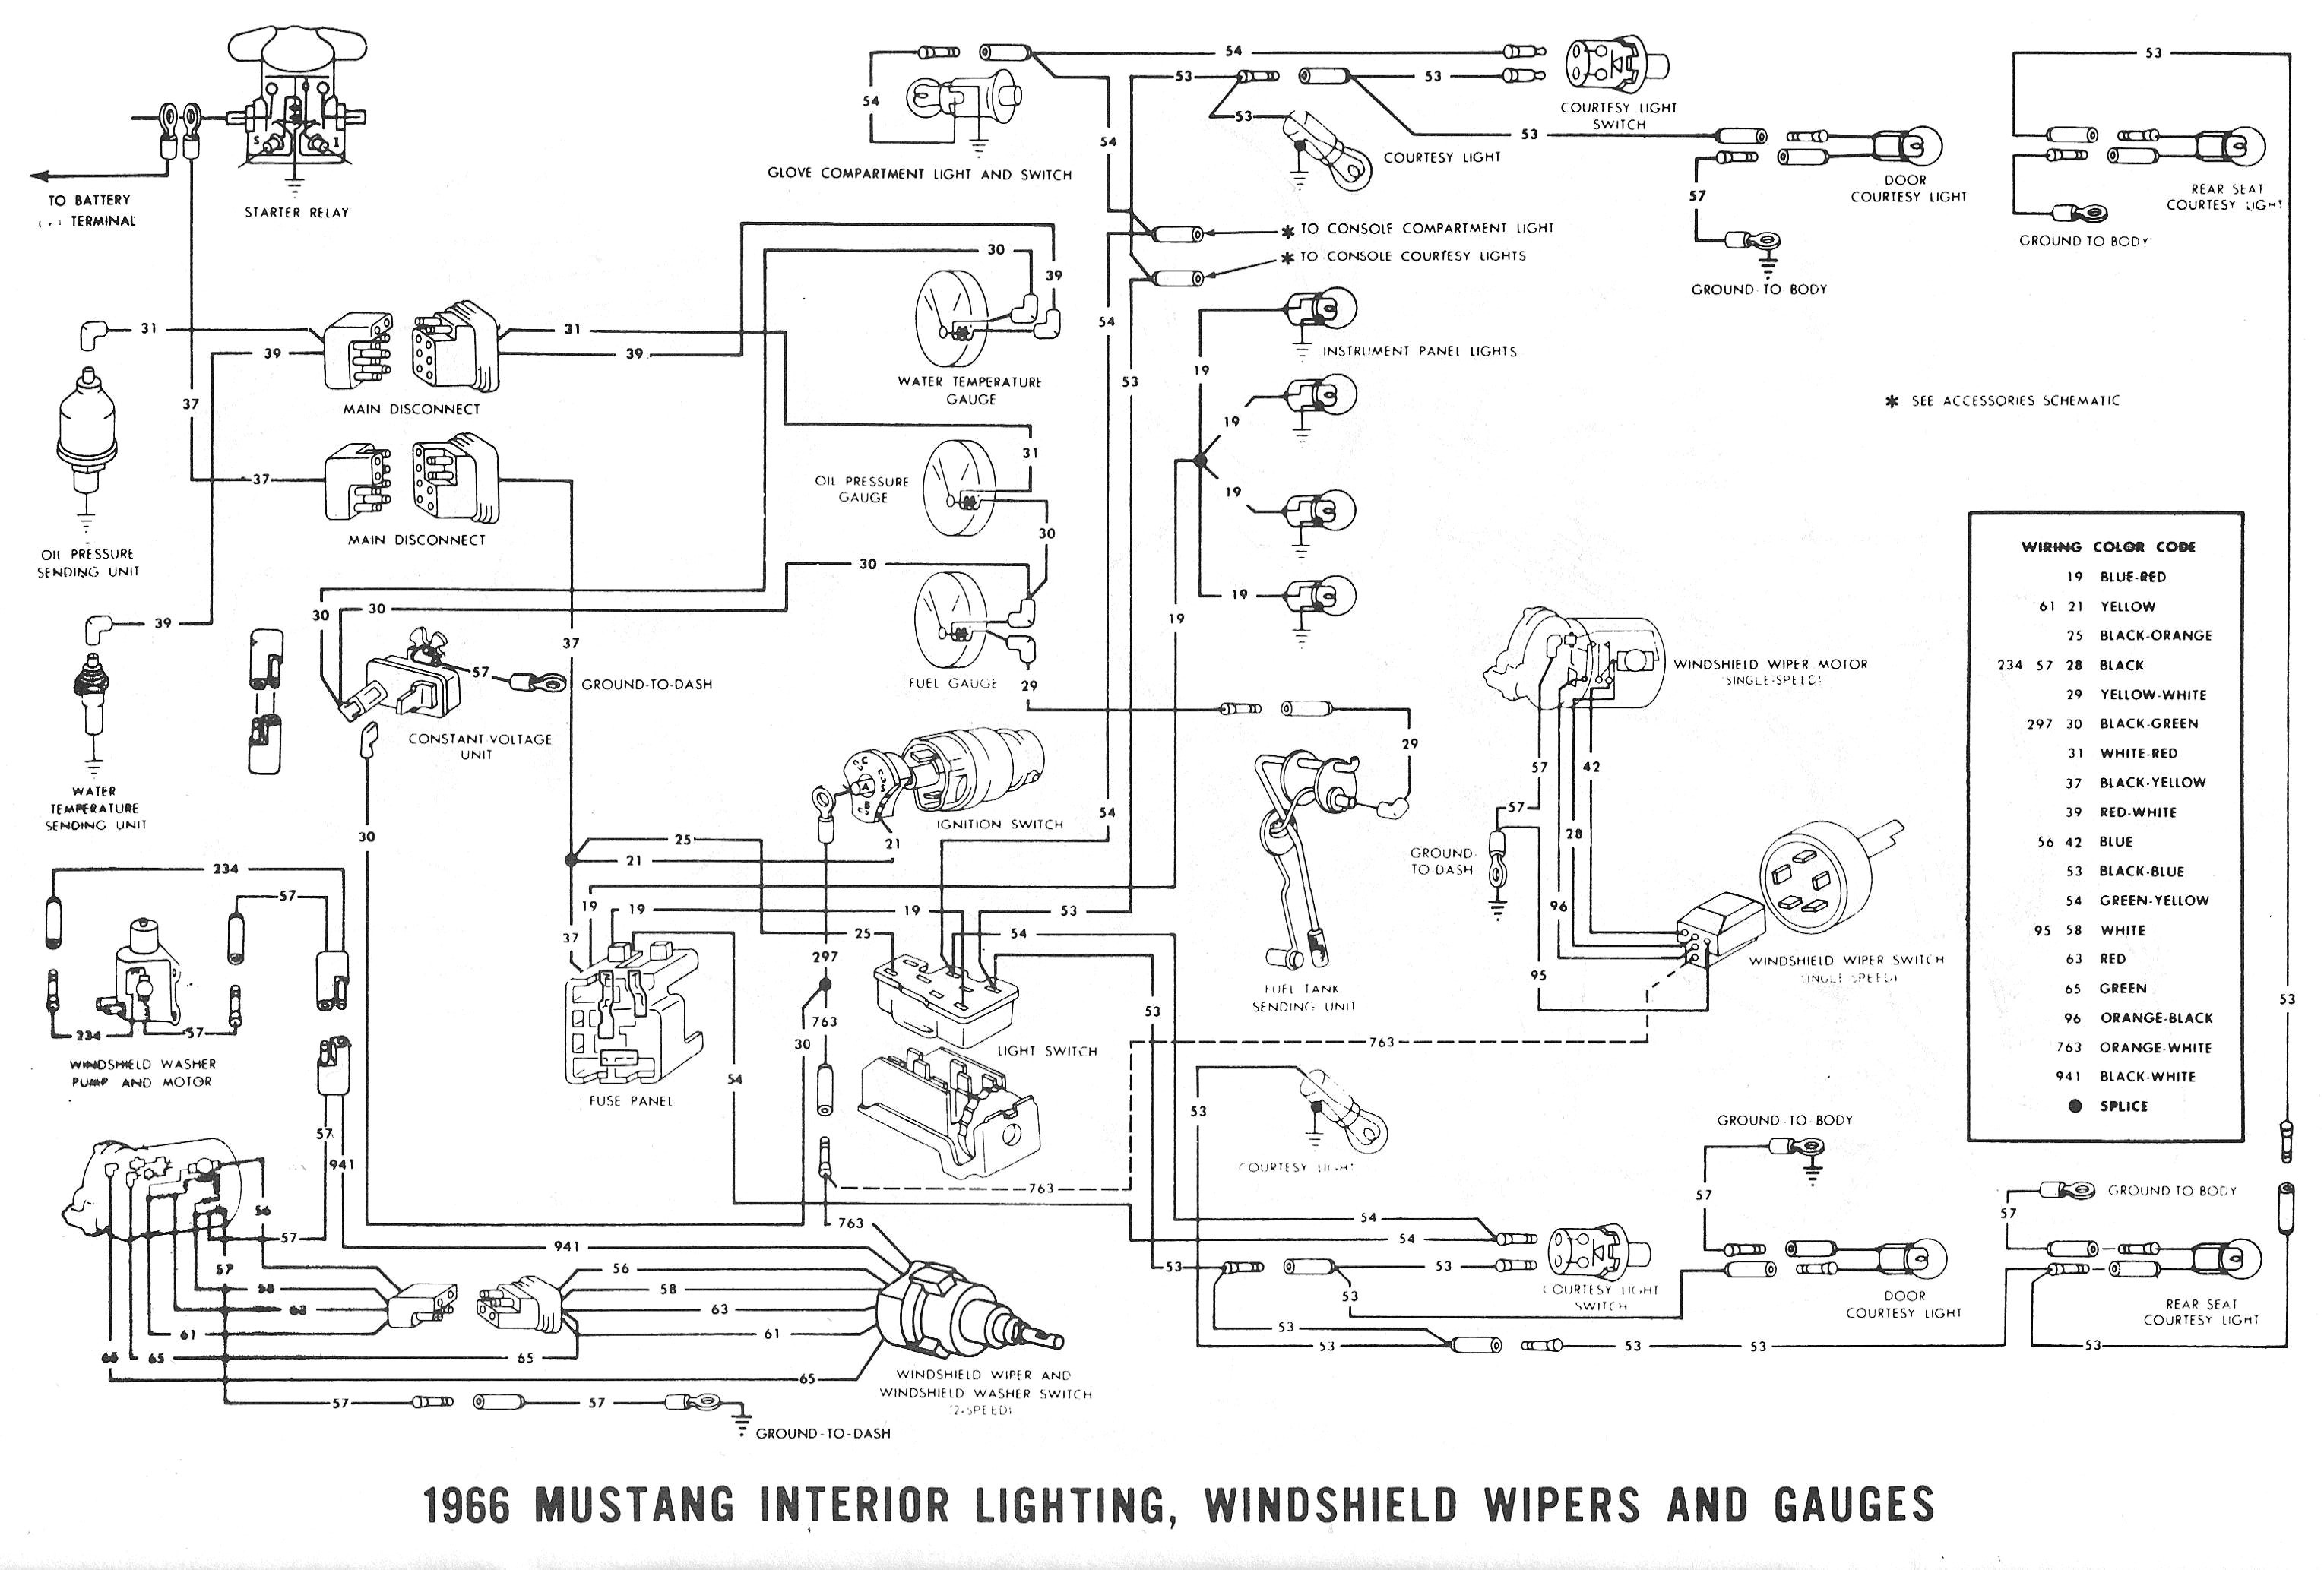 Land Rover Wiring Diagrams 1966 Ford Mustang Diagram Smart 1995 Discovery Schematic Circuit Rh Wiringdiagraminc Today 1967 Vacuum